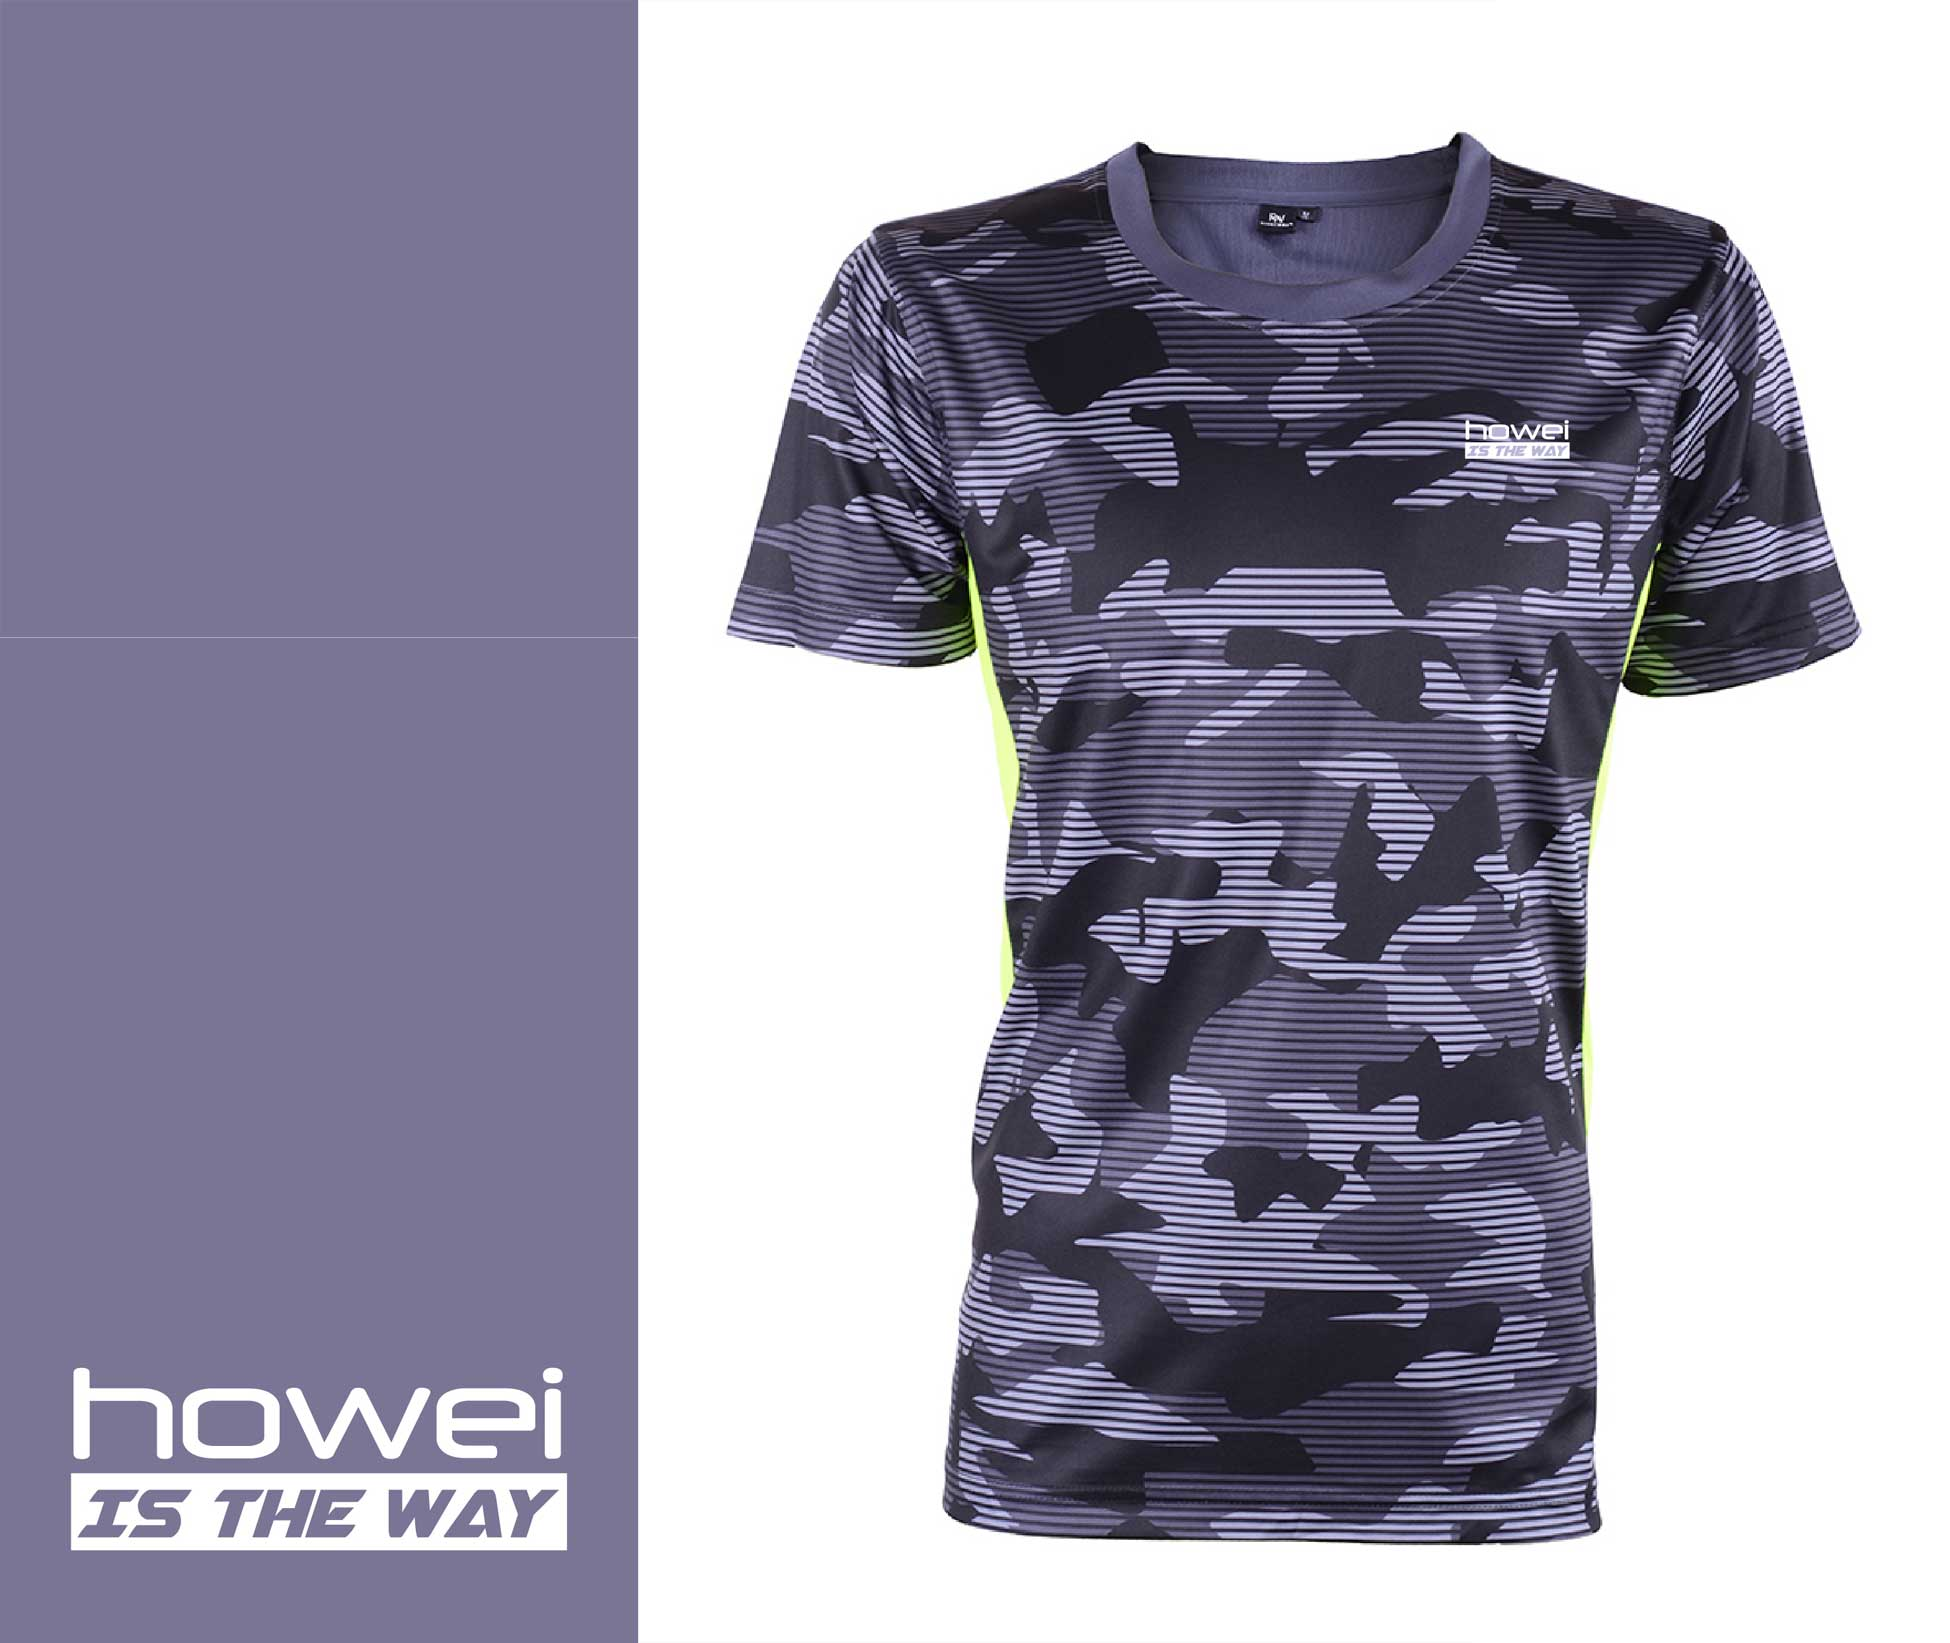 Howei Camo Shirt